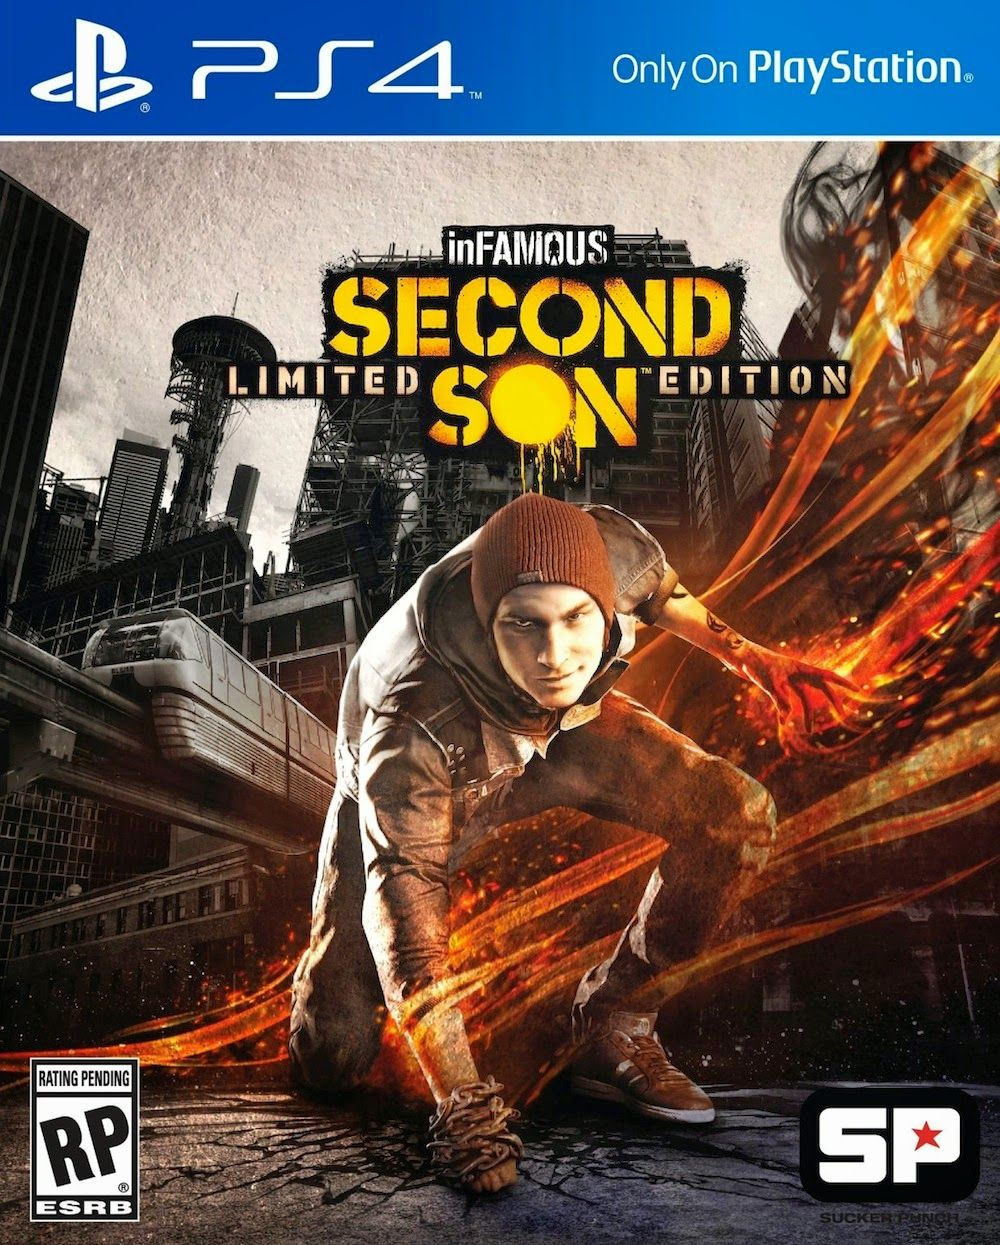 Over-1-Million-inFAMOUS-Second-Son-Game-Sold-ps4  A few weeks ago, Sucker Punch launched Playstation 4 Exclusive inFAMOUS Second Son. The Super Hero - Super Villain caper based in Seattle.  #PS4Games #Playstation4Games #inFamousSecondSon #PlaystationGames #SuckerPunch #PS4Exclusive #1Million